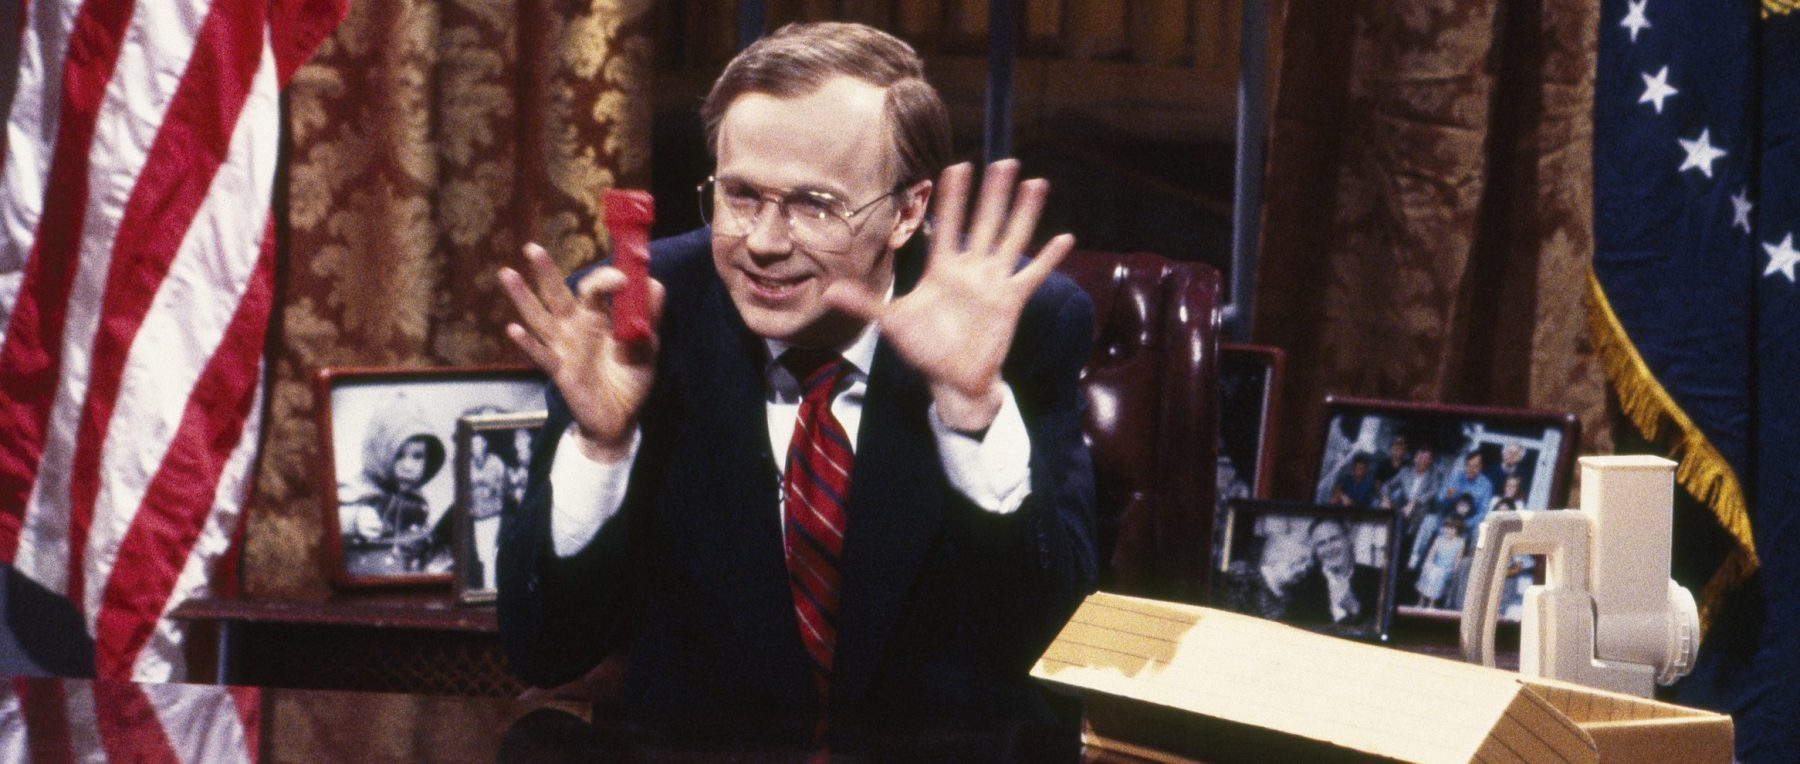 Dana Carvey as George Bush on SATURDAY NIGHT LIVE  (Photo by Alan Singer/NBC/NBCU Photo Bank via Getty Images)